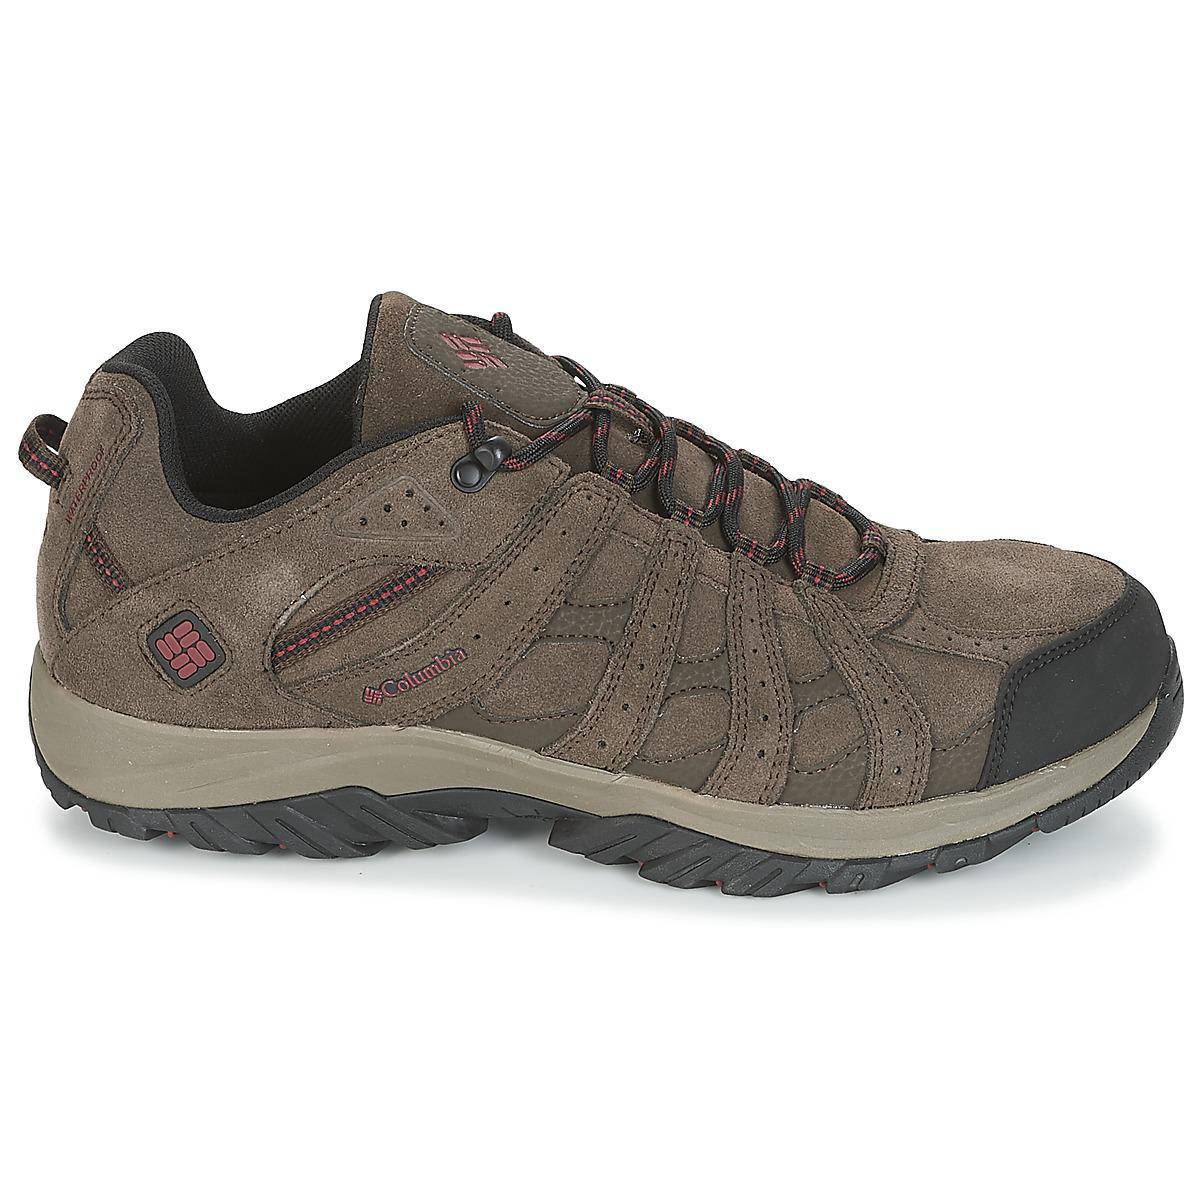 Columbia - Canyon Point Leather Omnitech Men's Walking Boots In Brown for  Men - Lyst. View fullscreen